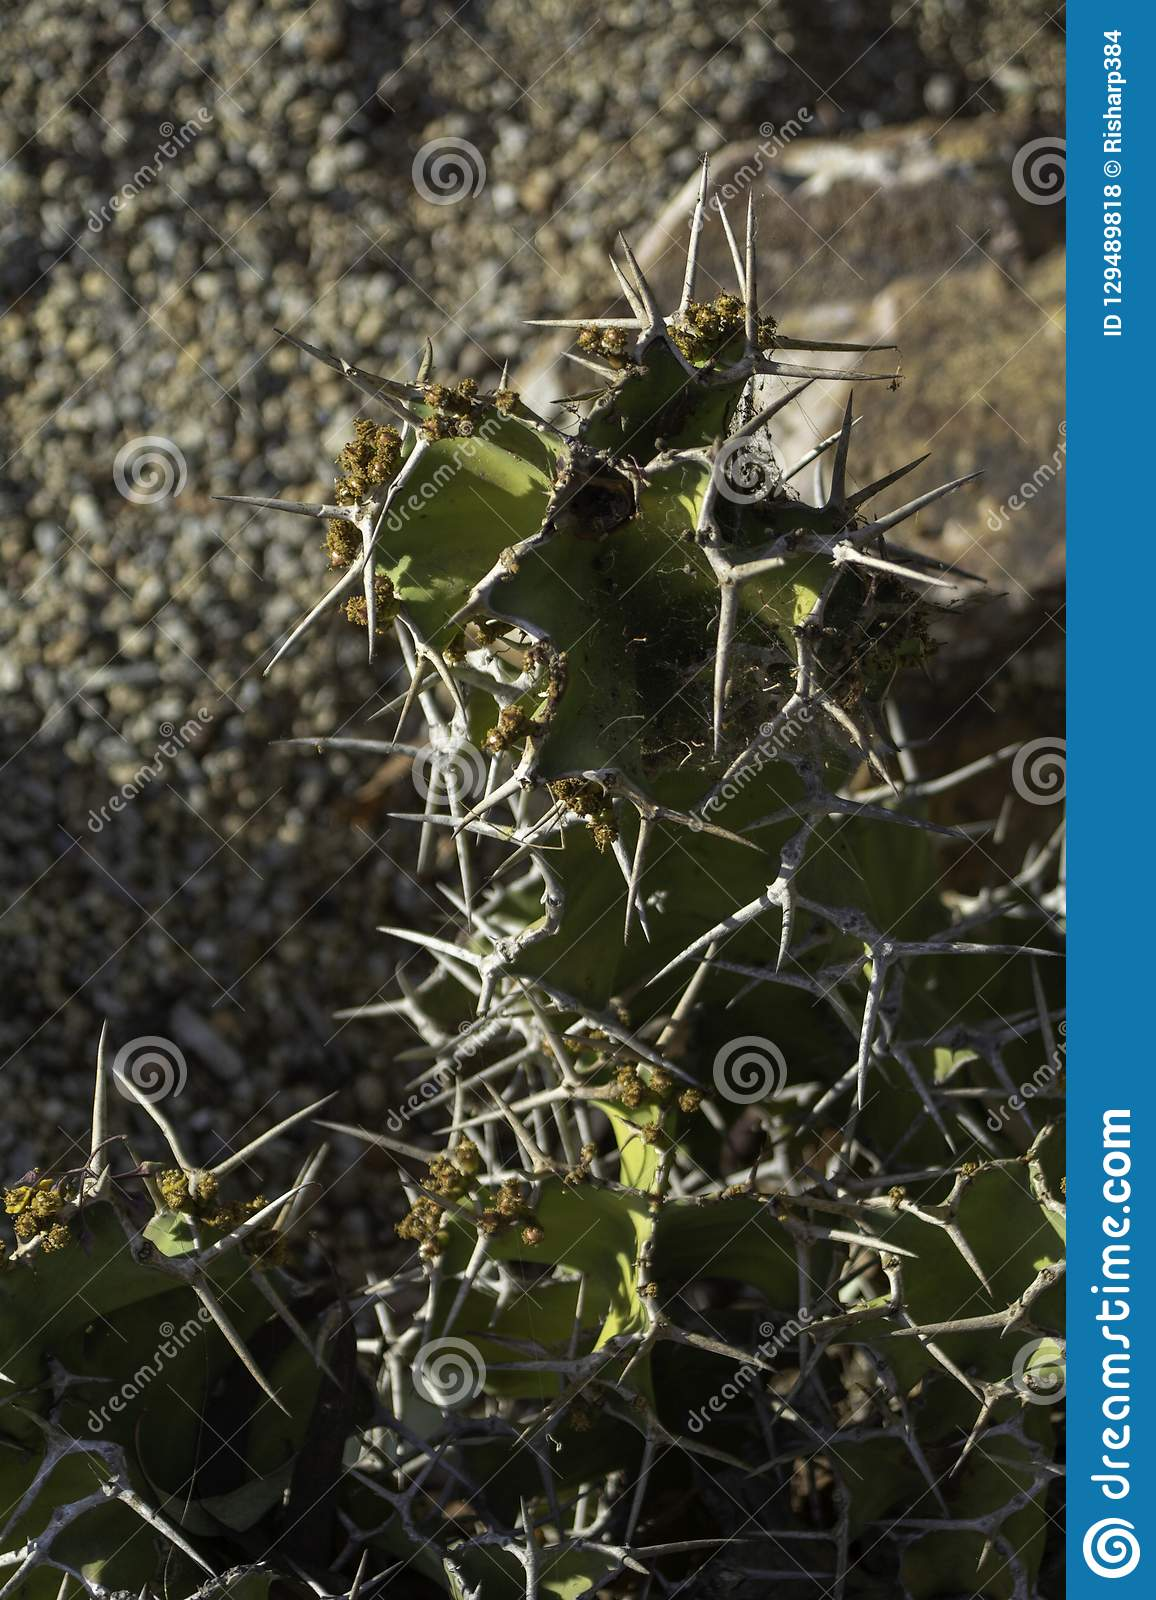 Good when cactus plants of southern california something